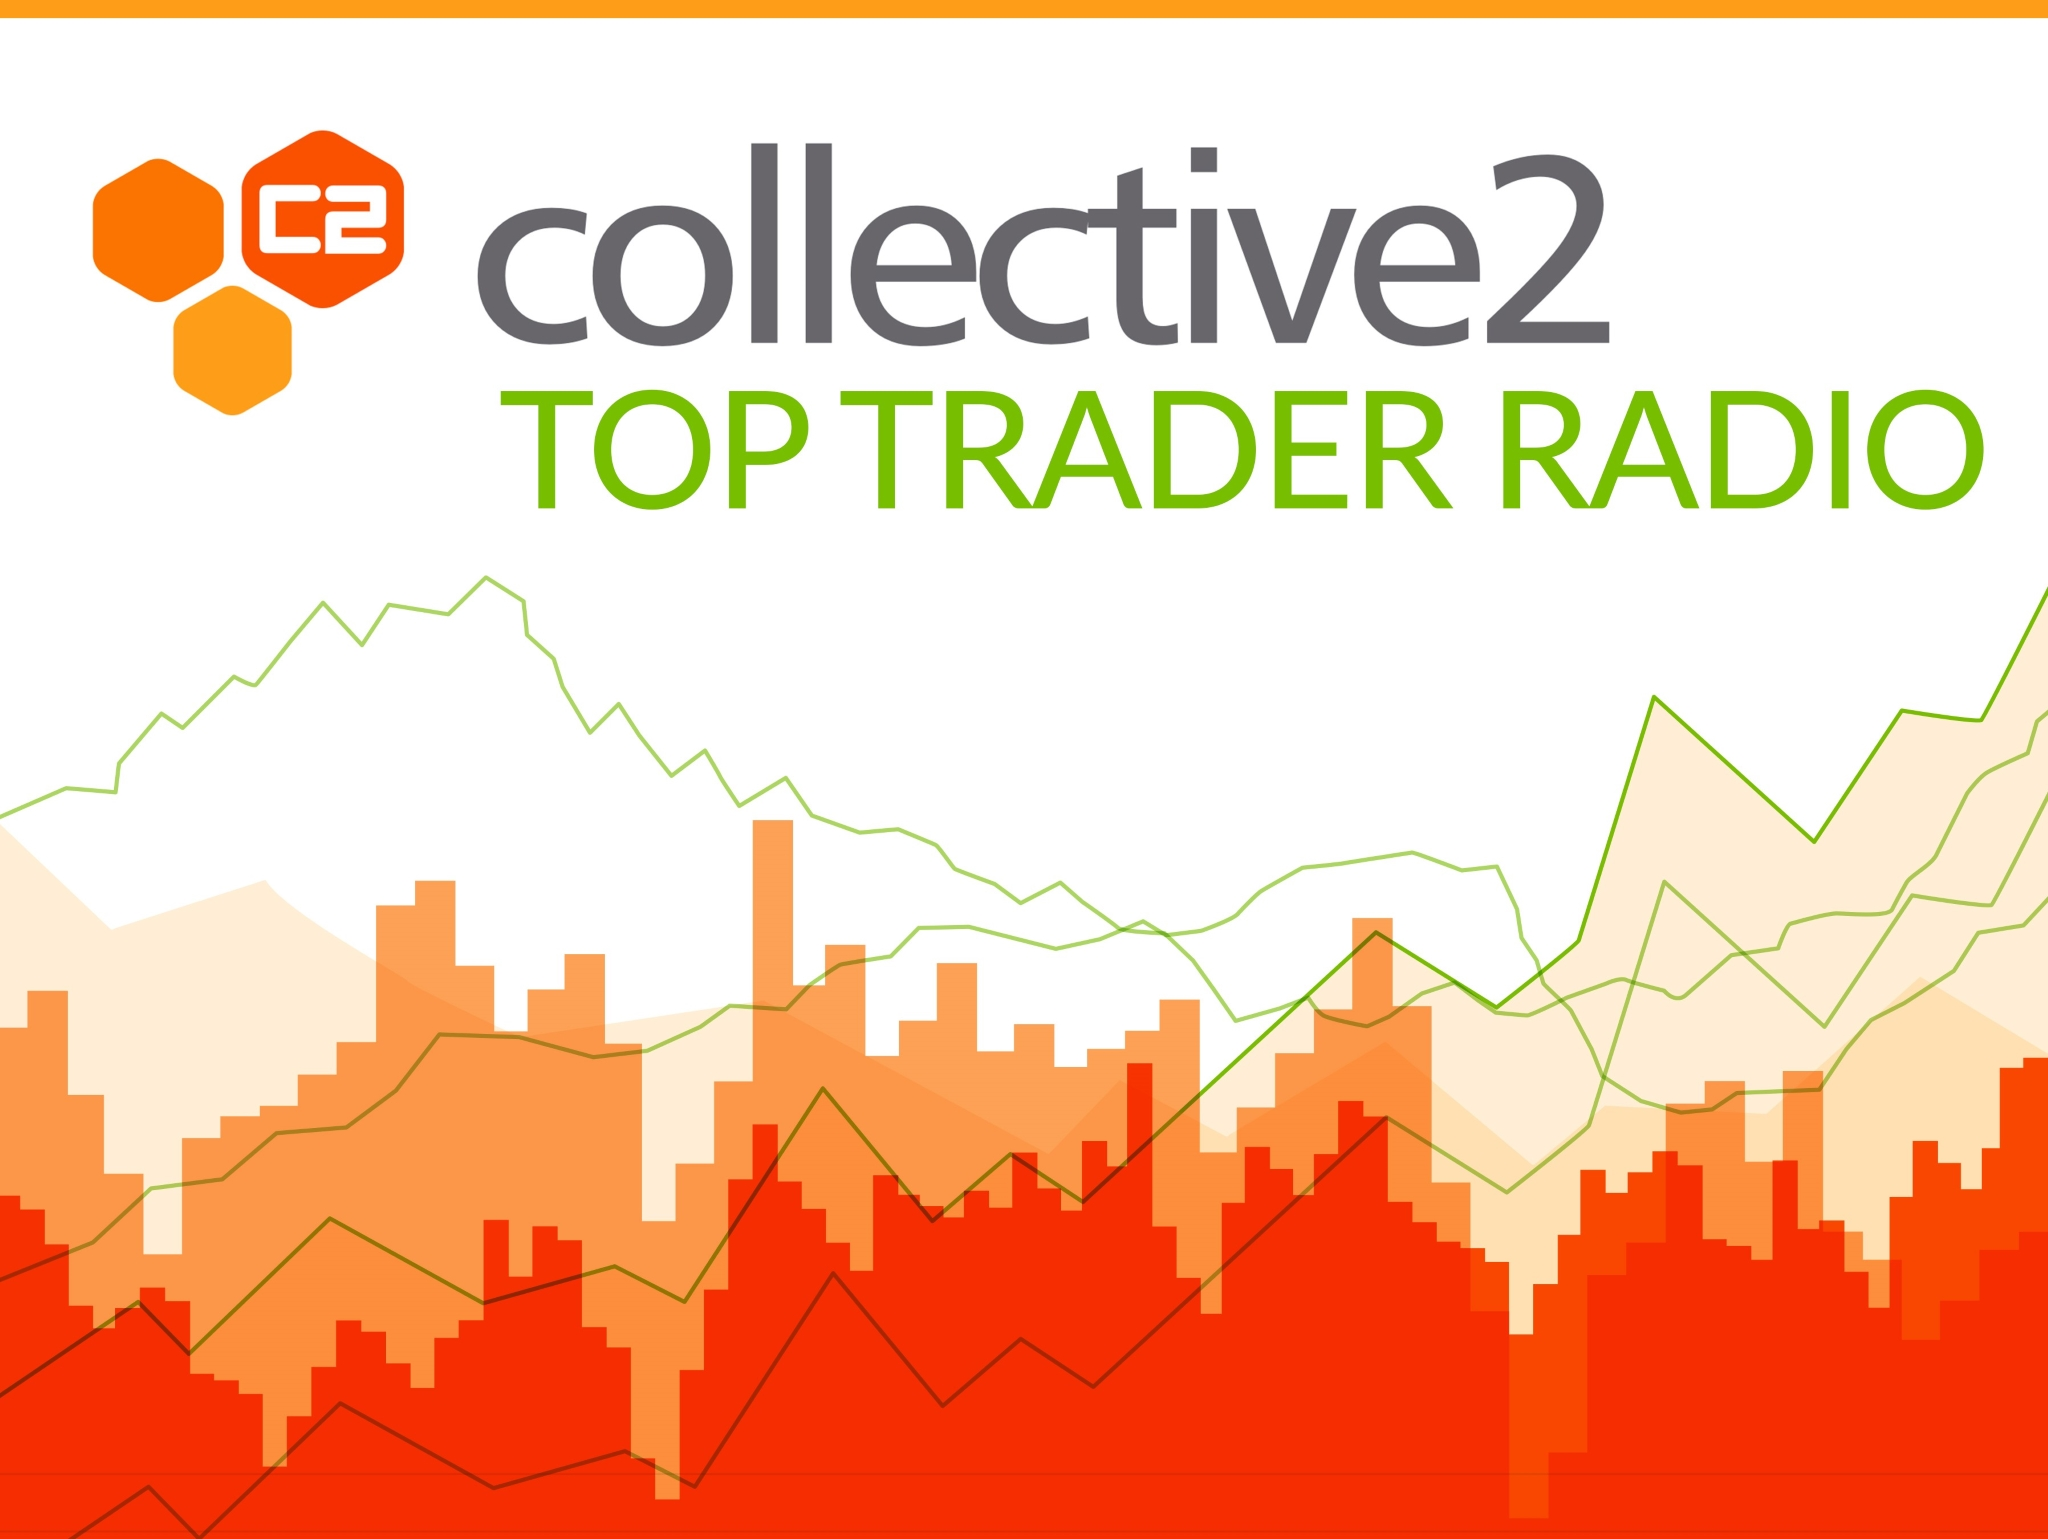 Collective2 Top Trader Radio